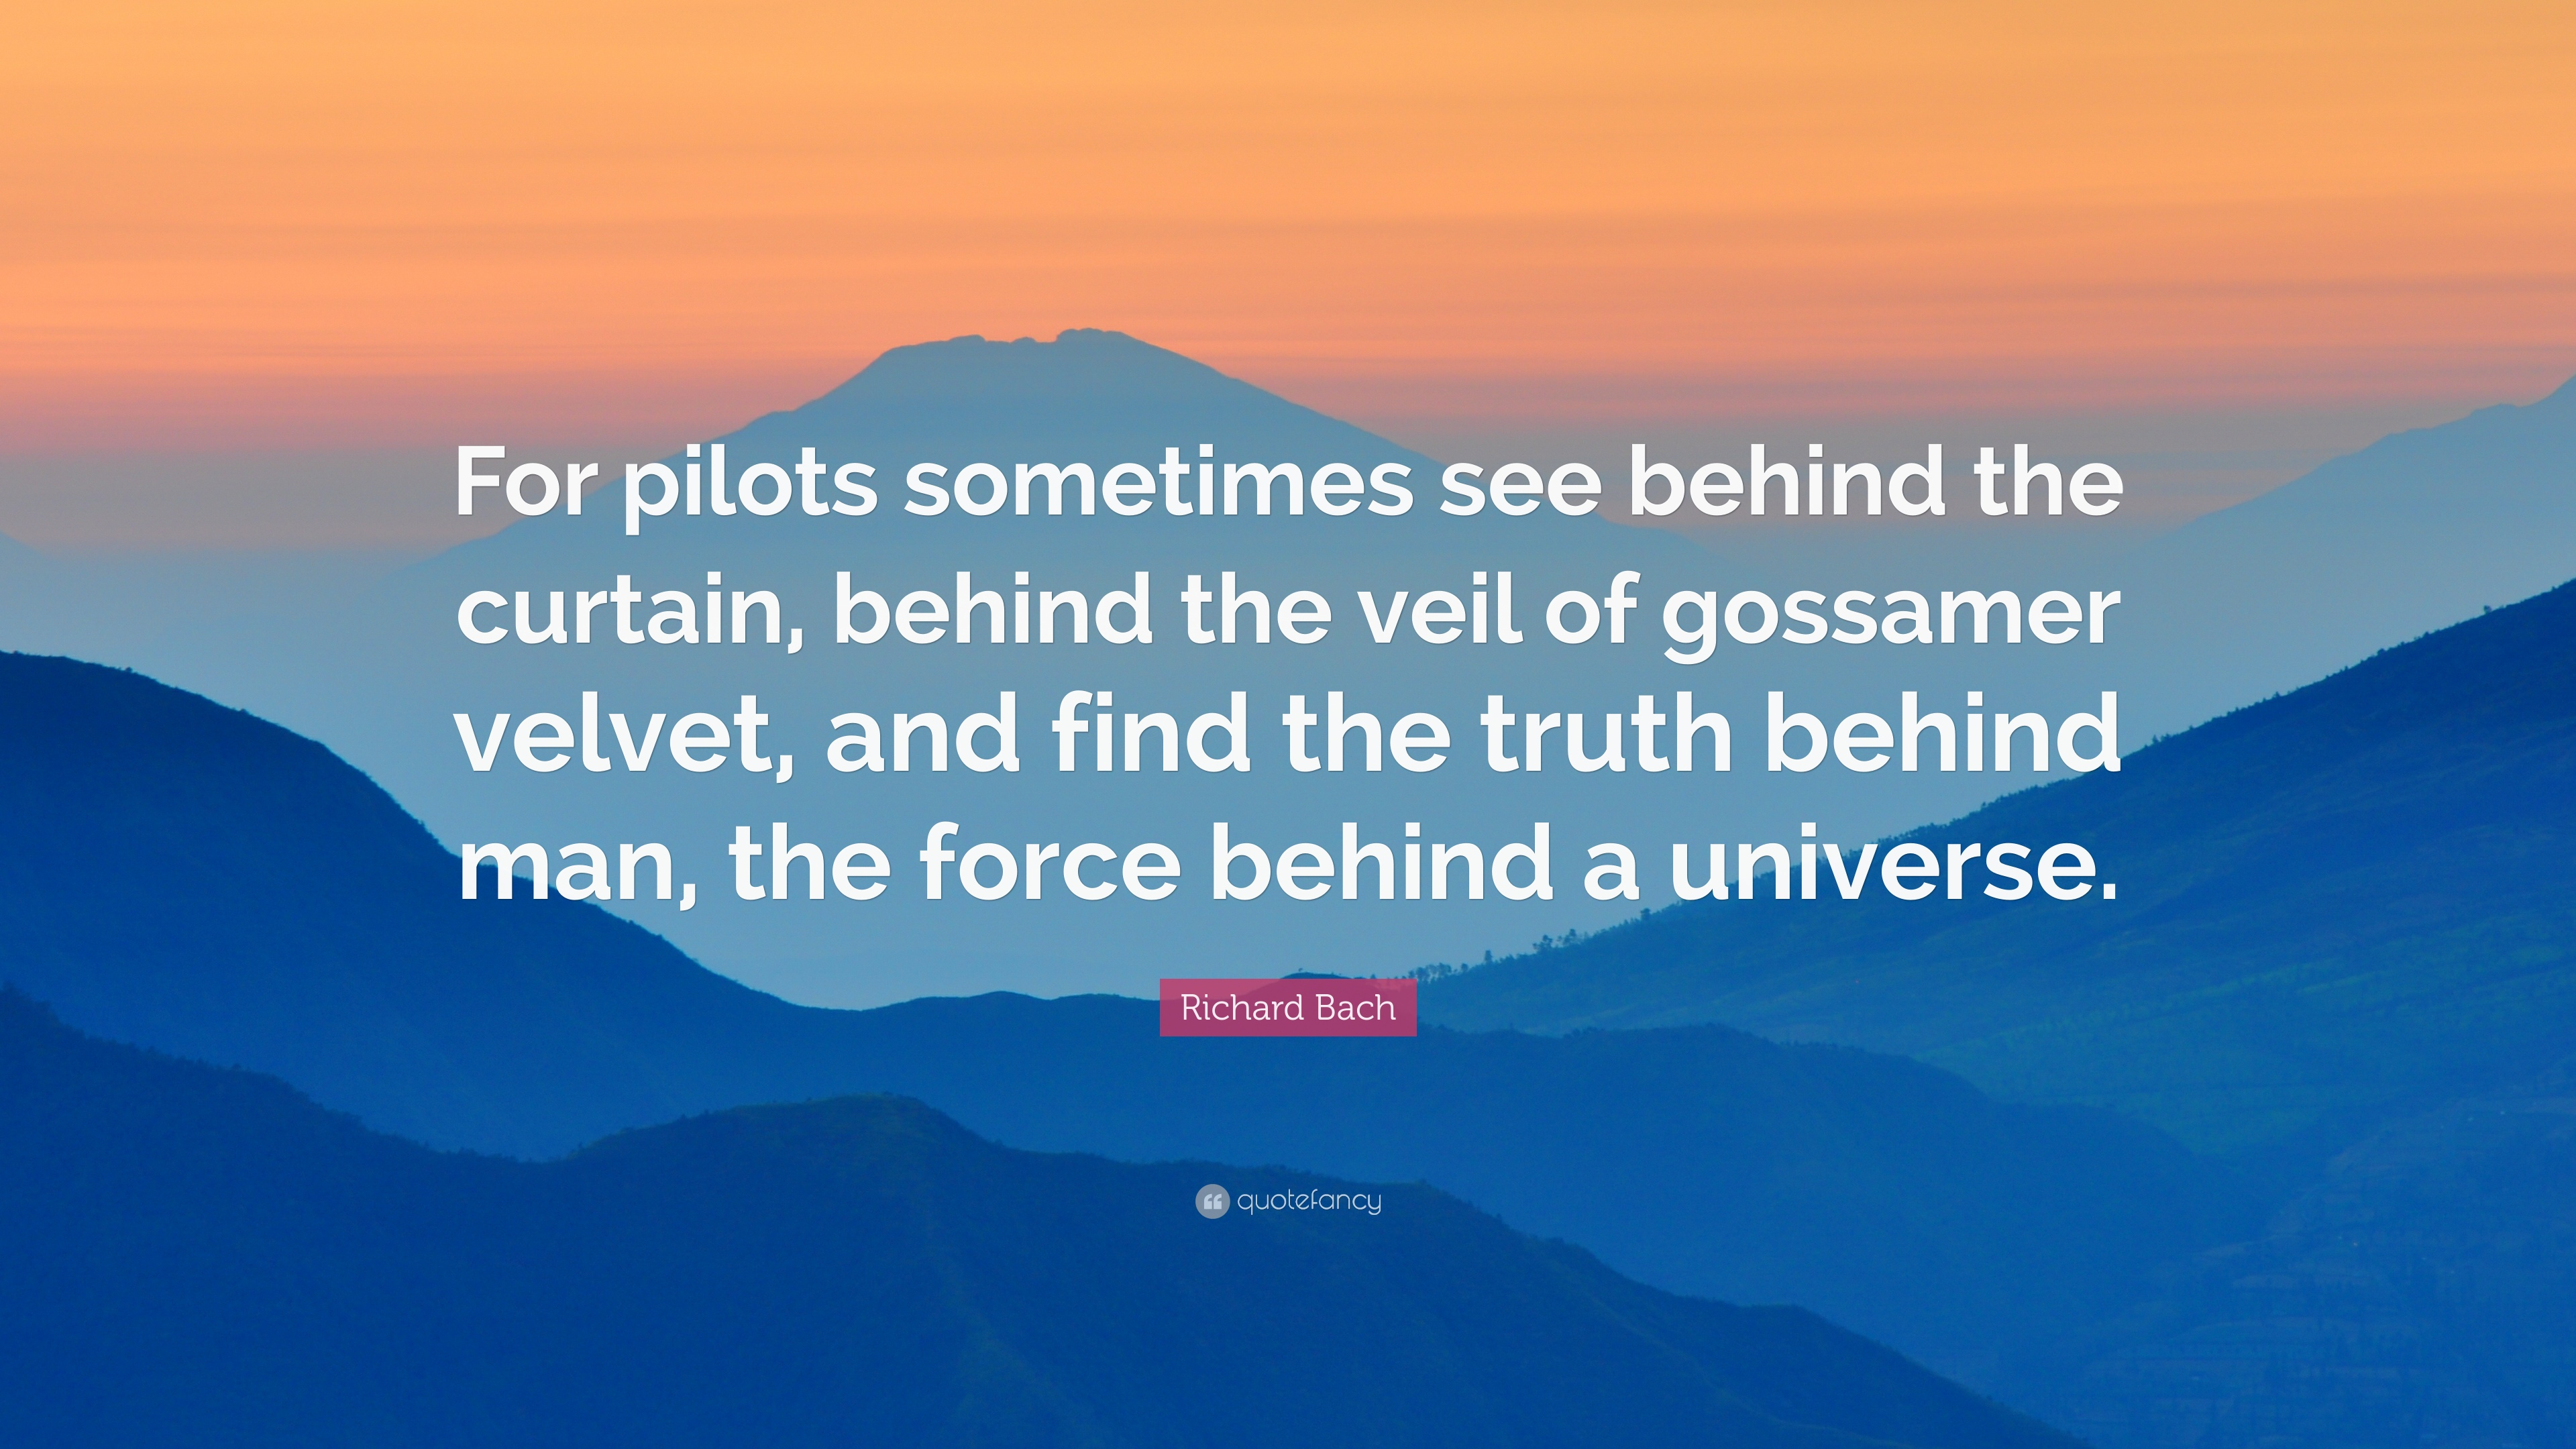 Richard Bach Quote For pilots sometimes see behind the curtain